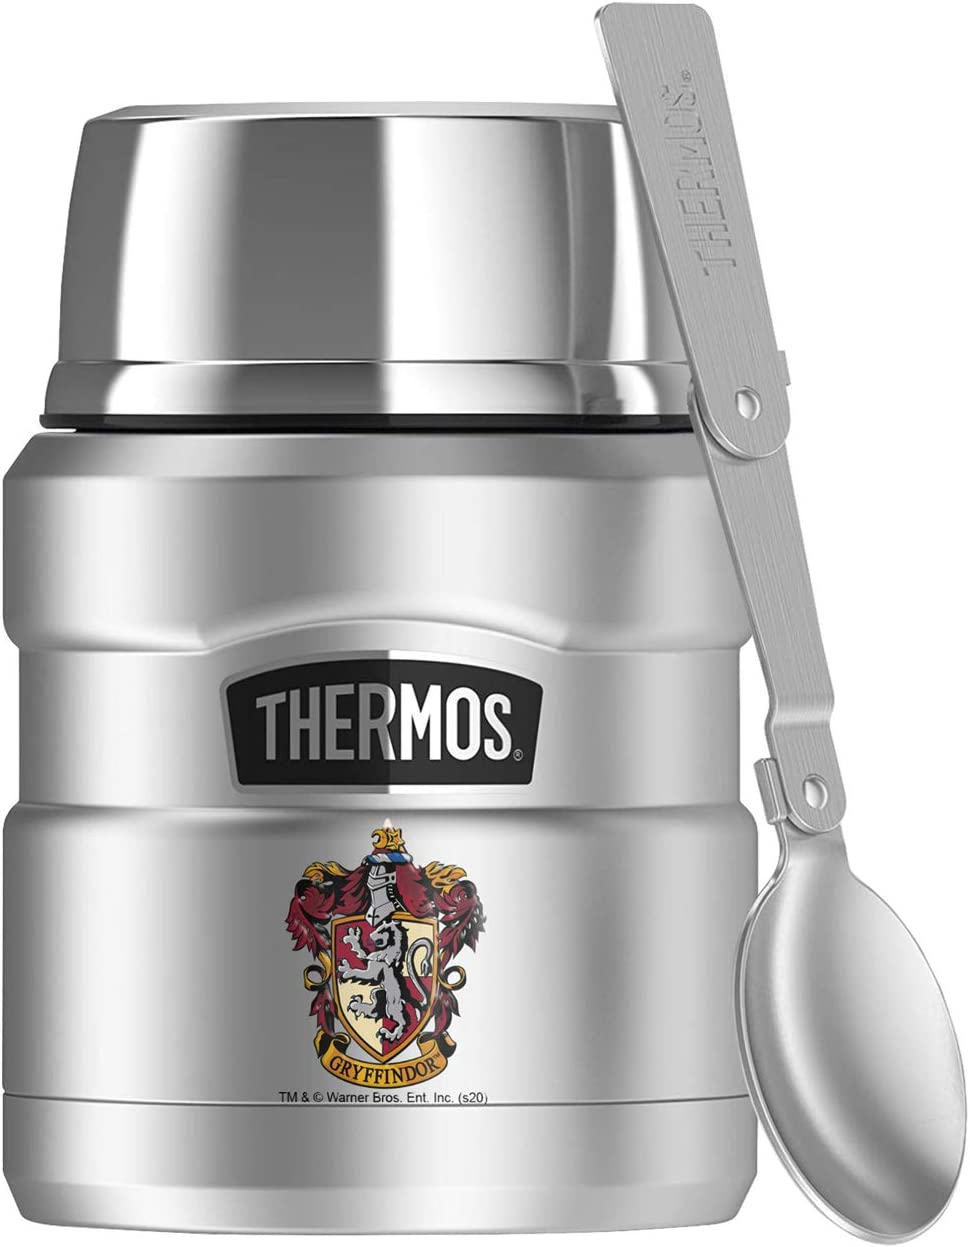 Harry Potter Gryffindor House Crest, THERMOS STAINLESS KING Stainless Steel Food Jar with Folding Spoon, Vacuum insulated & Double Wall, 16oz